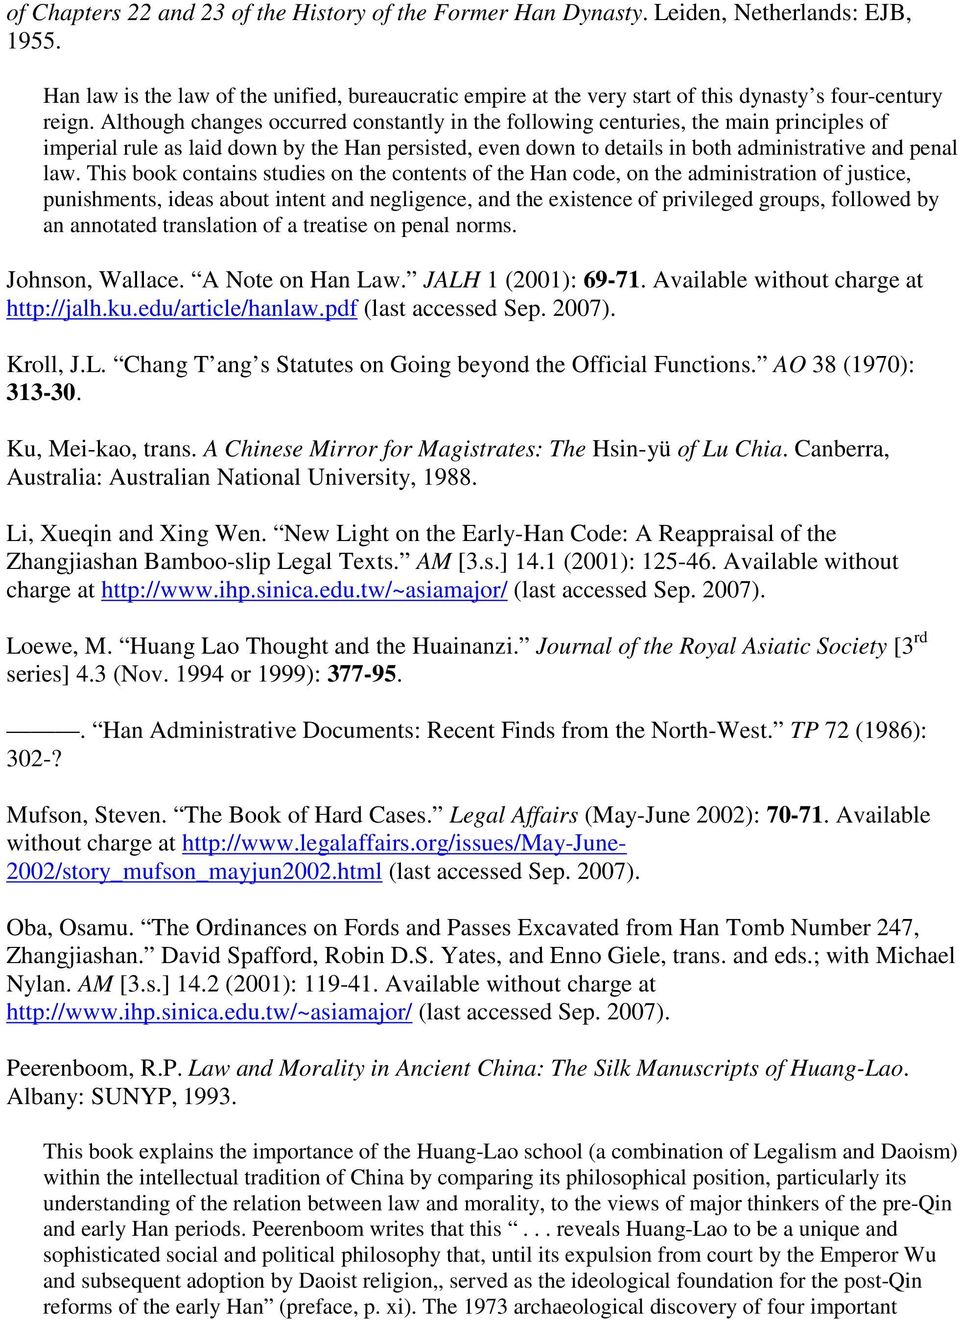 Although changes occurred constantly in the following centuries, the main principles of imperial rule as laid down by the Han persisted, even down to details in both administrative and penal law.